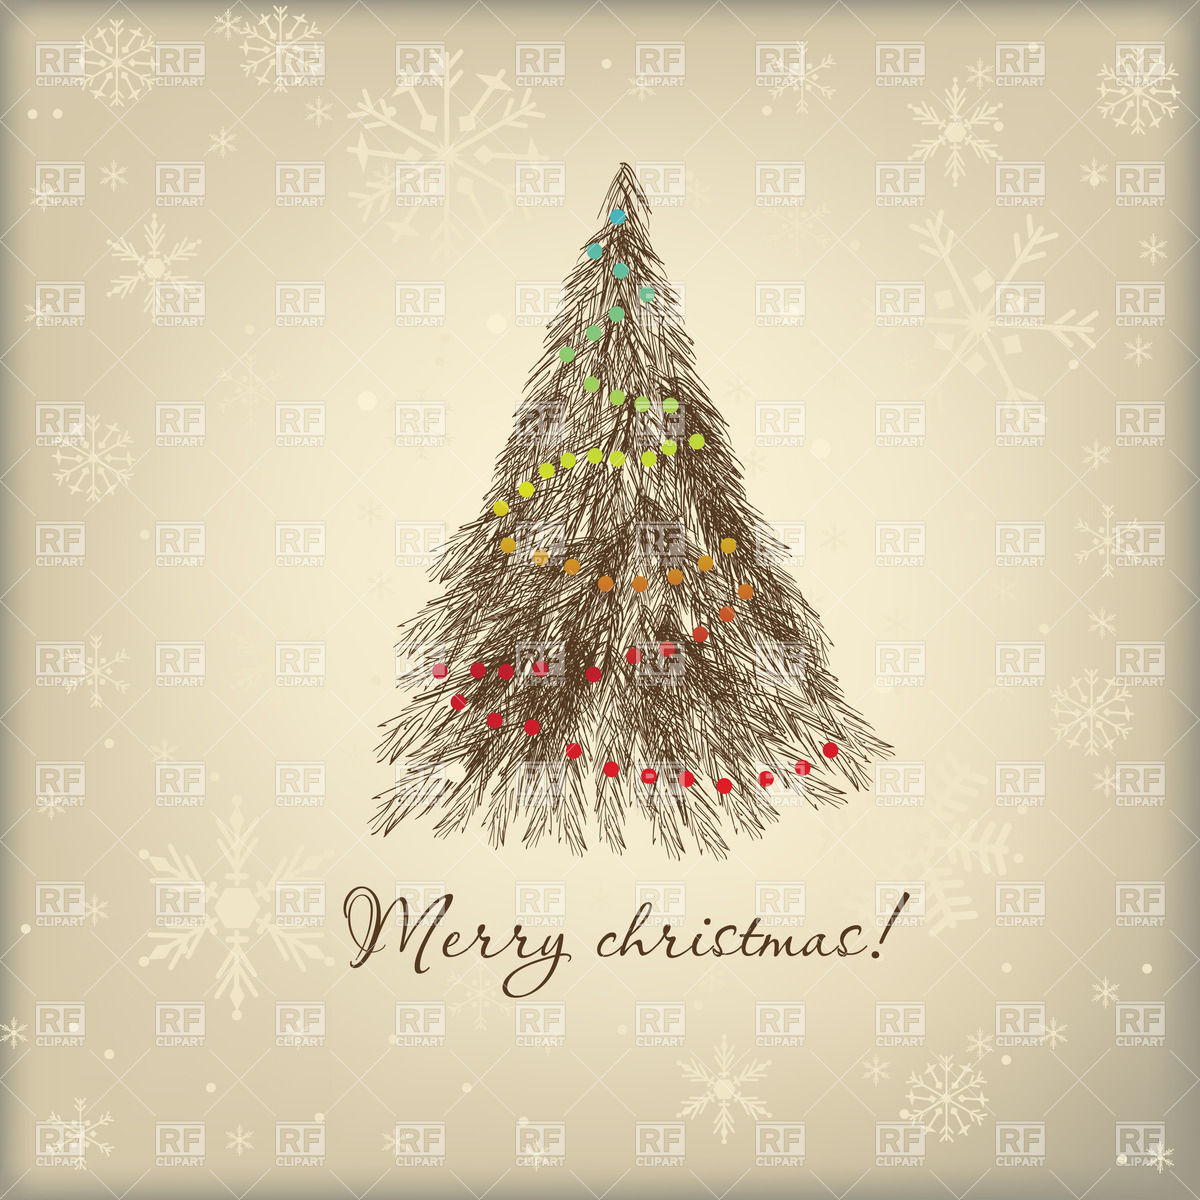 Vintage Looking Christmas Tree Download Royalty Free Vector Clipart